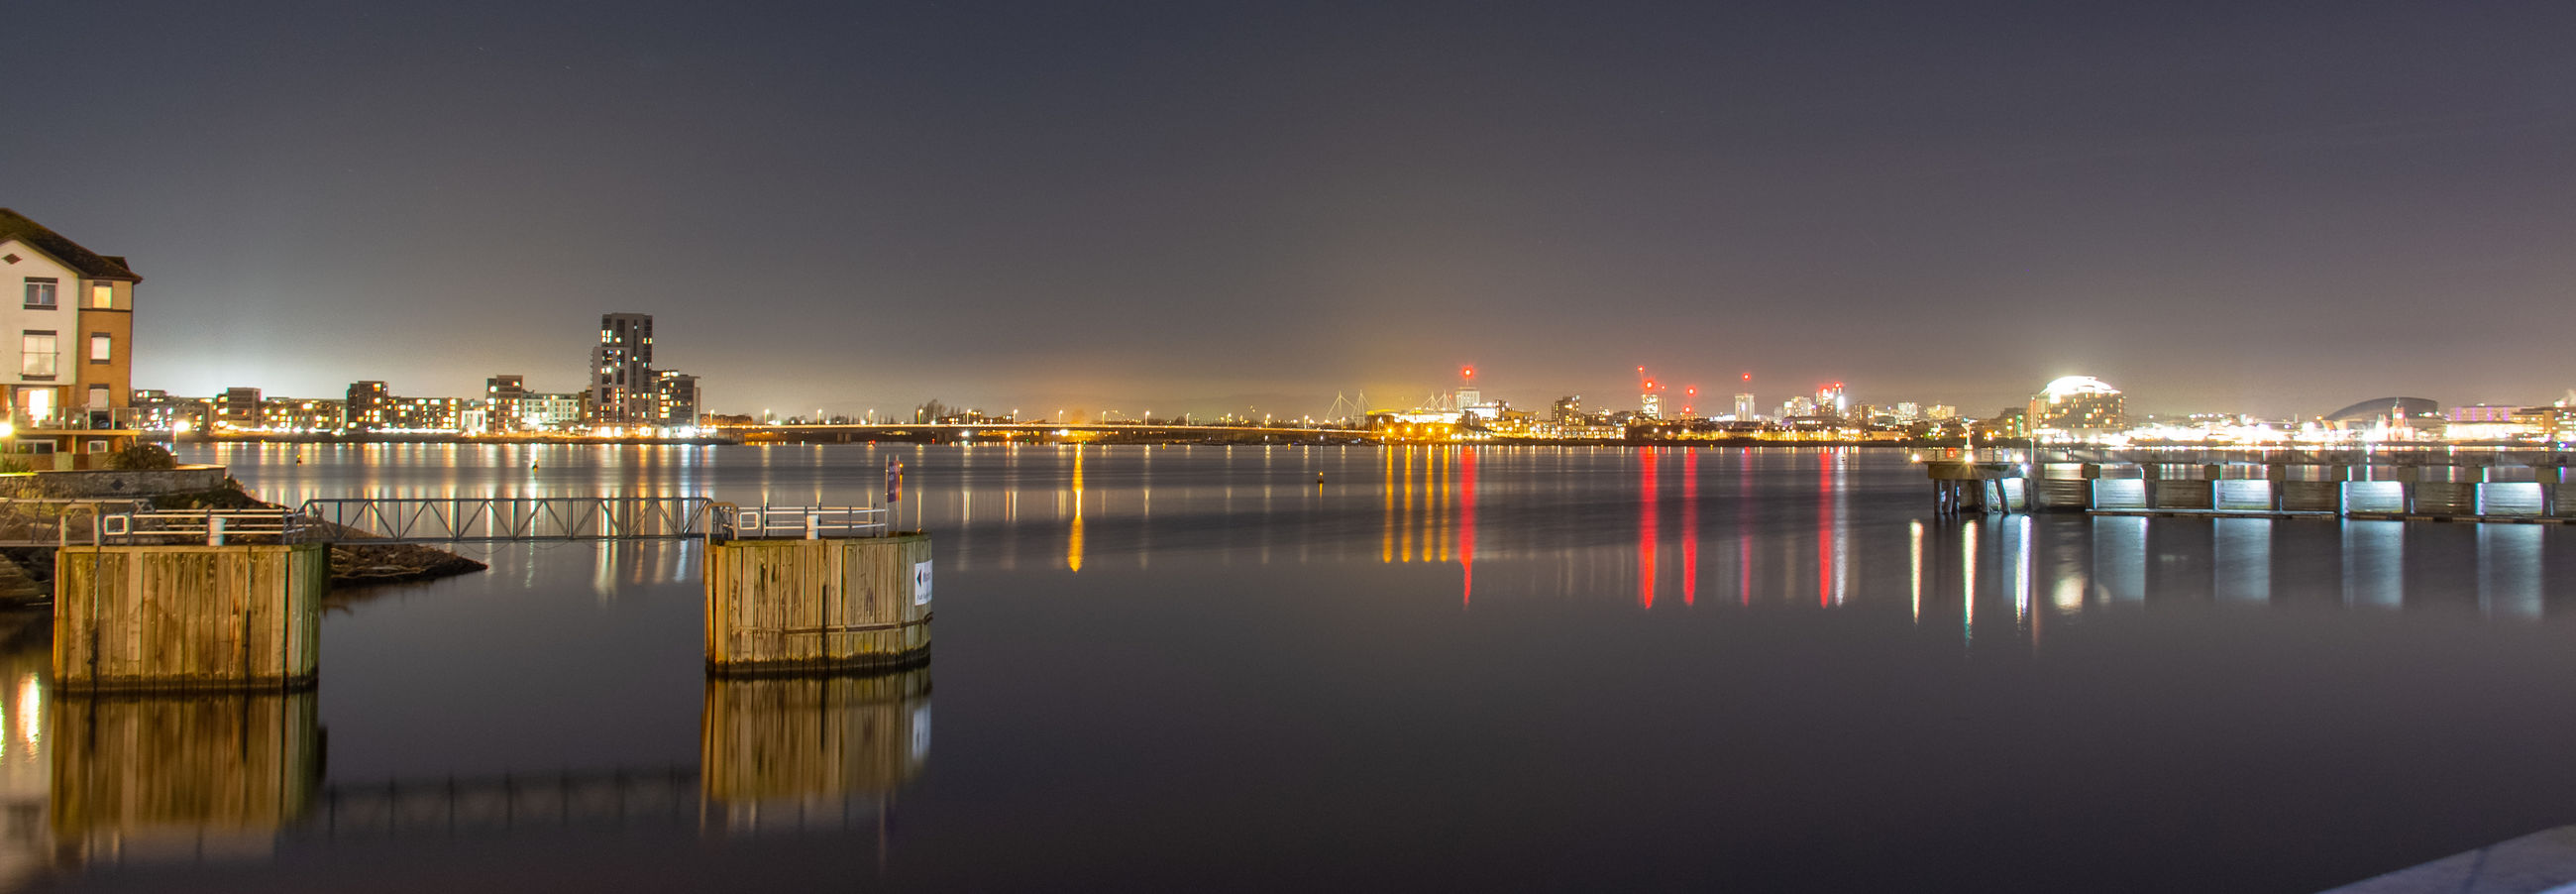 water, sky, reflection, illuminated, waterfront, architecture, building exterior, built structure, nature, night, no people, city, building, sea, outdoors, scenics - nature, standing water, cityscape, skyscraper